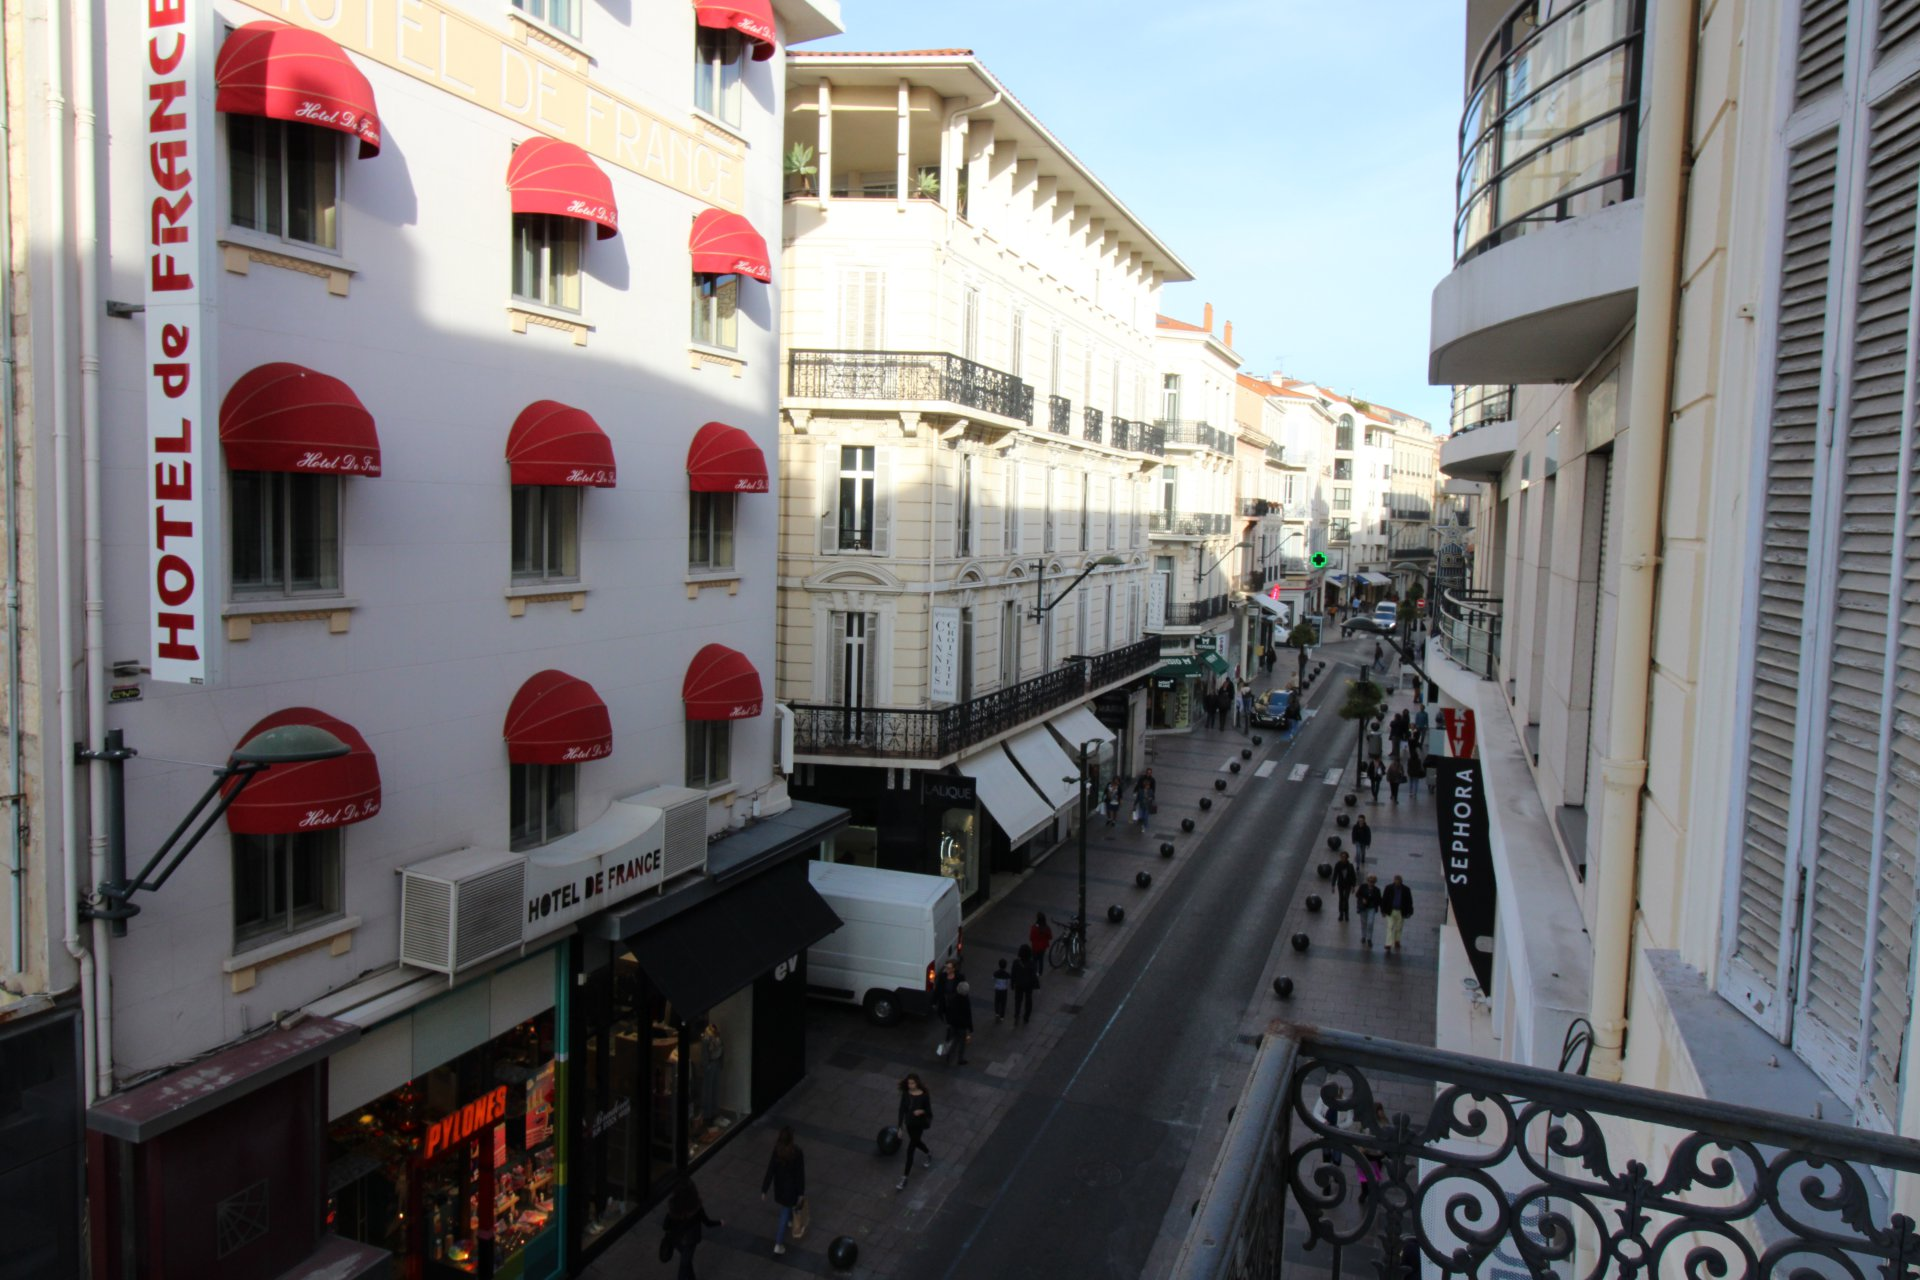 Rental apartment  centre Cannes,next to Croisette and convention center